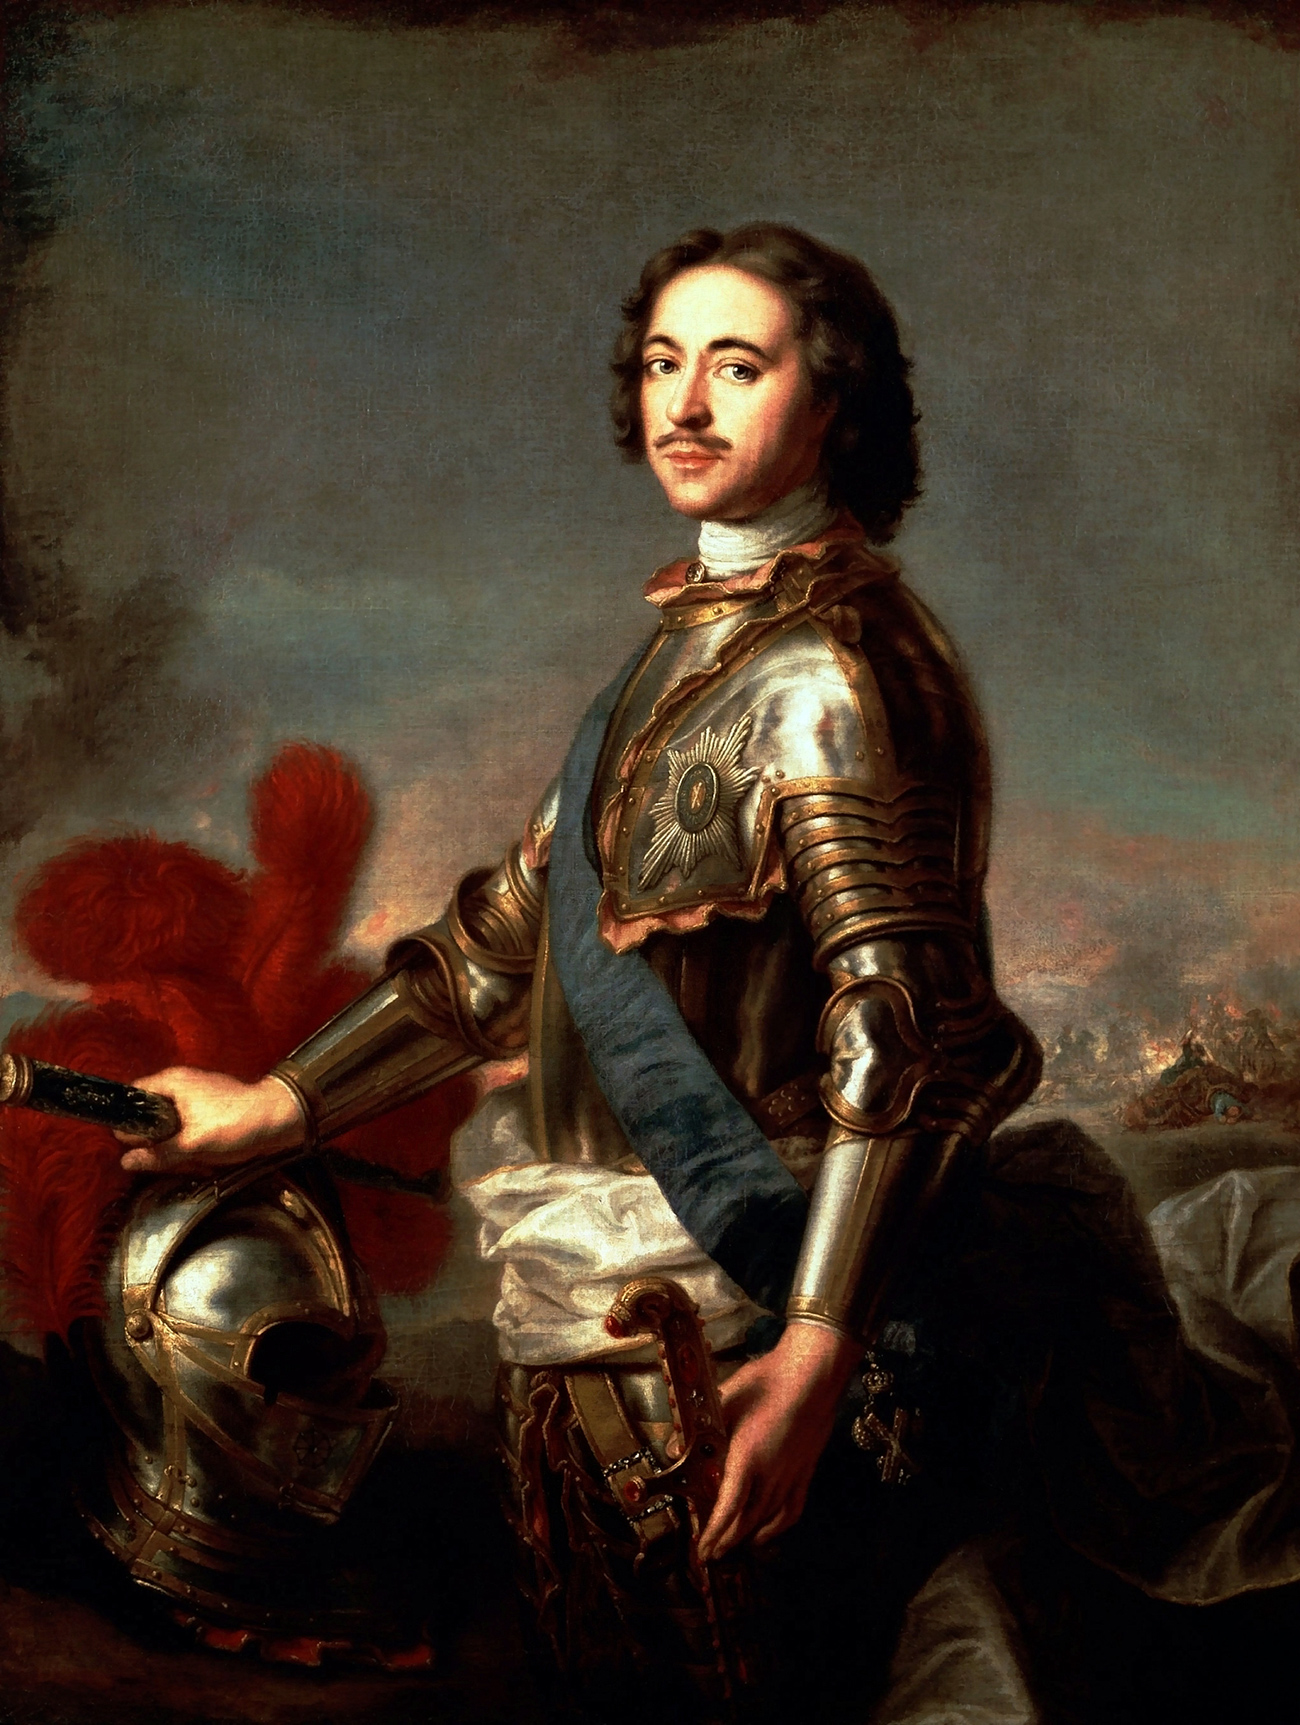 Peter the Great, 1717, by Jean-Marc Nattier. Source: The Munich Residenz